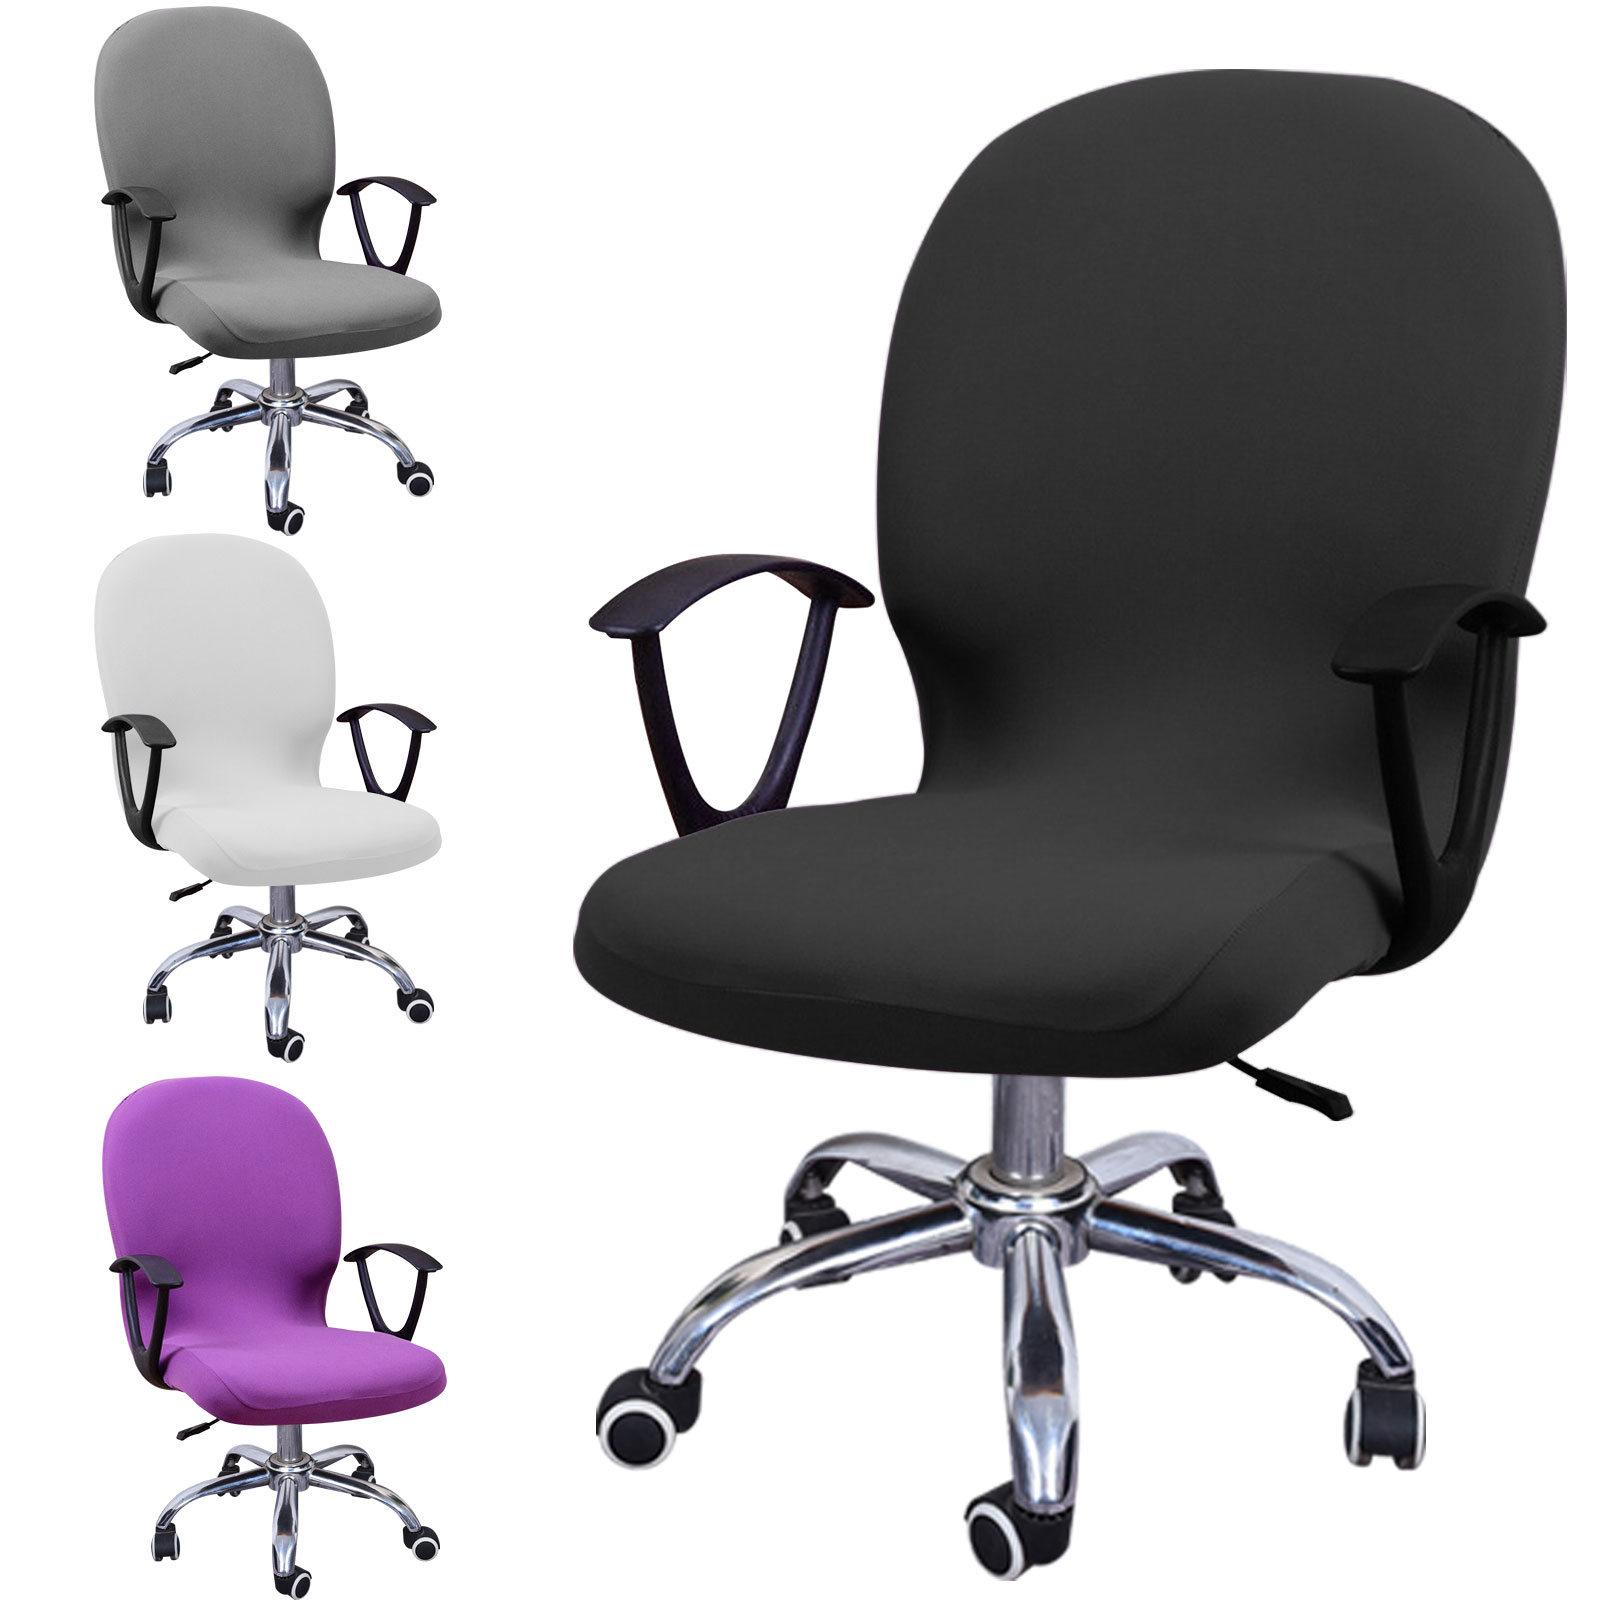 Swivel-Computer-Chair-Cover-Stretch-Remove-Office-Armchair-Slipcover-Seat-Cover thumbnail 10